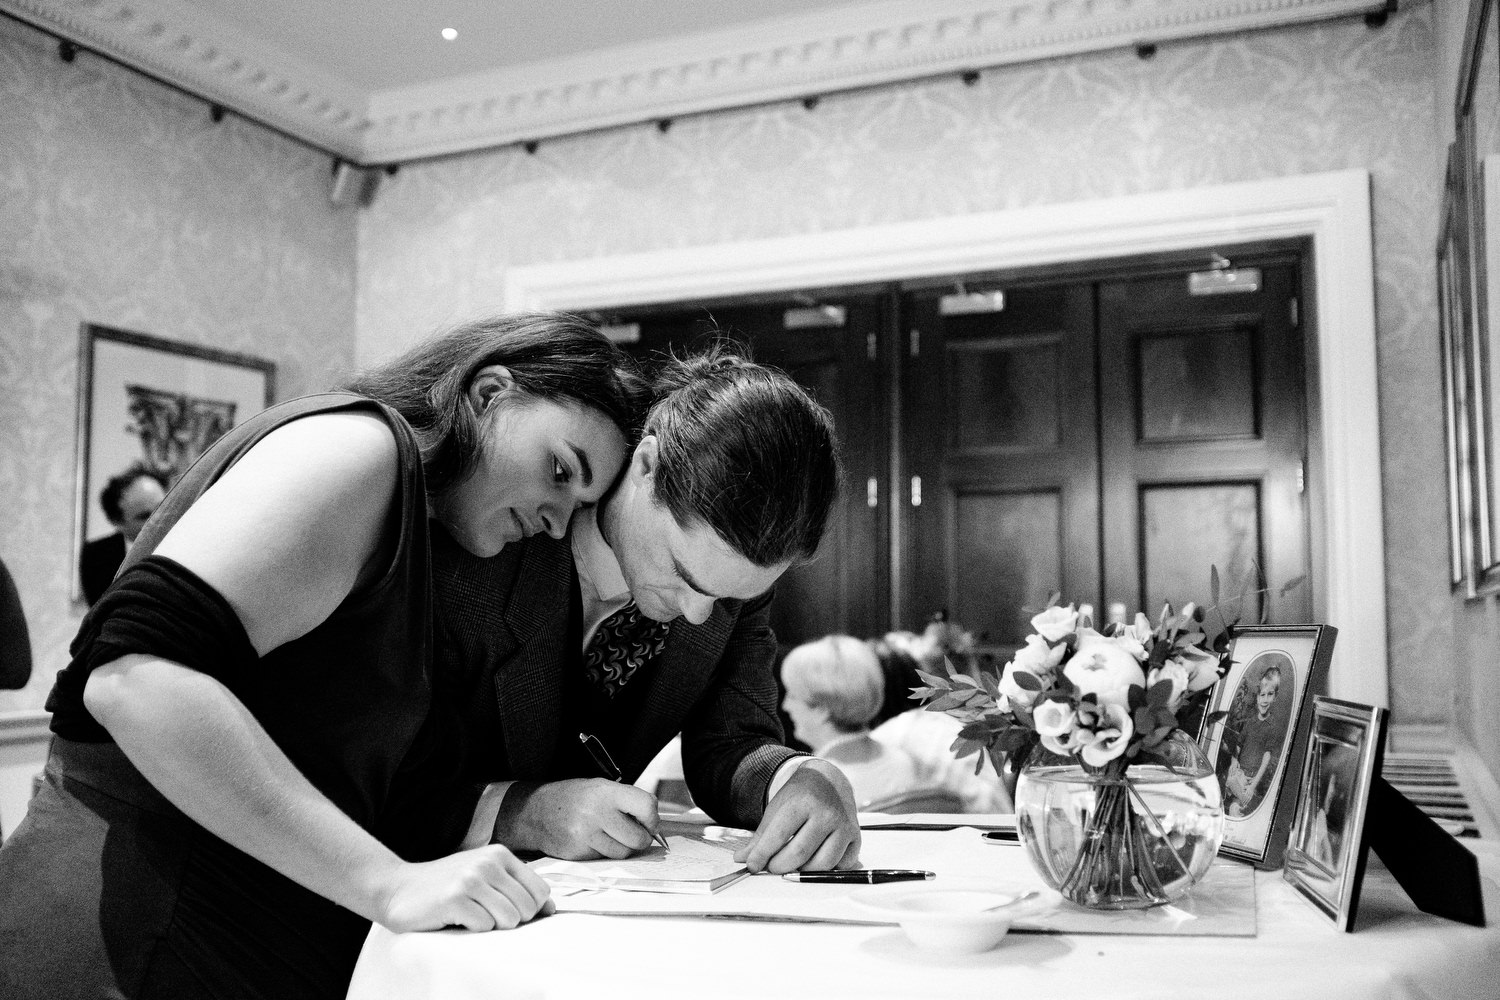 dmp0473_photographer_wedding_dublin_david_mcclelland_candid_photography_fujifilm_shelbourne_reception_documentary